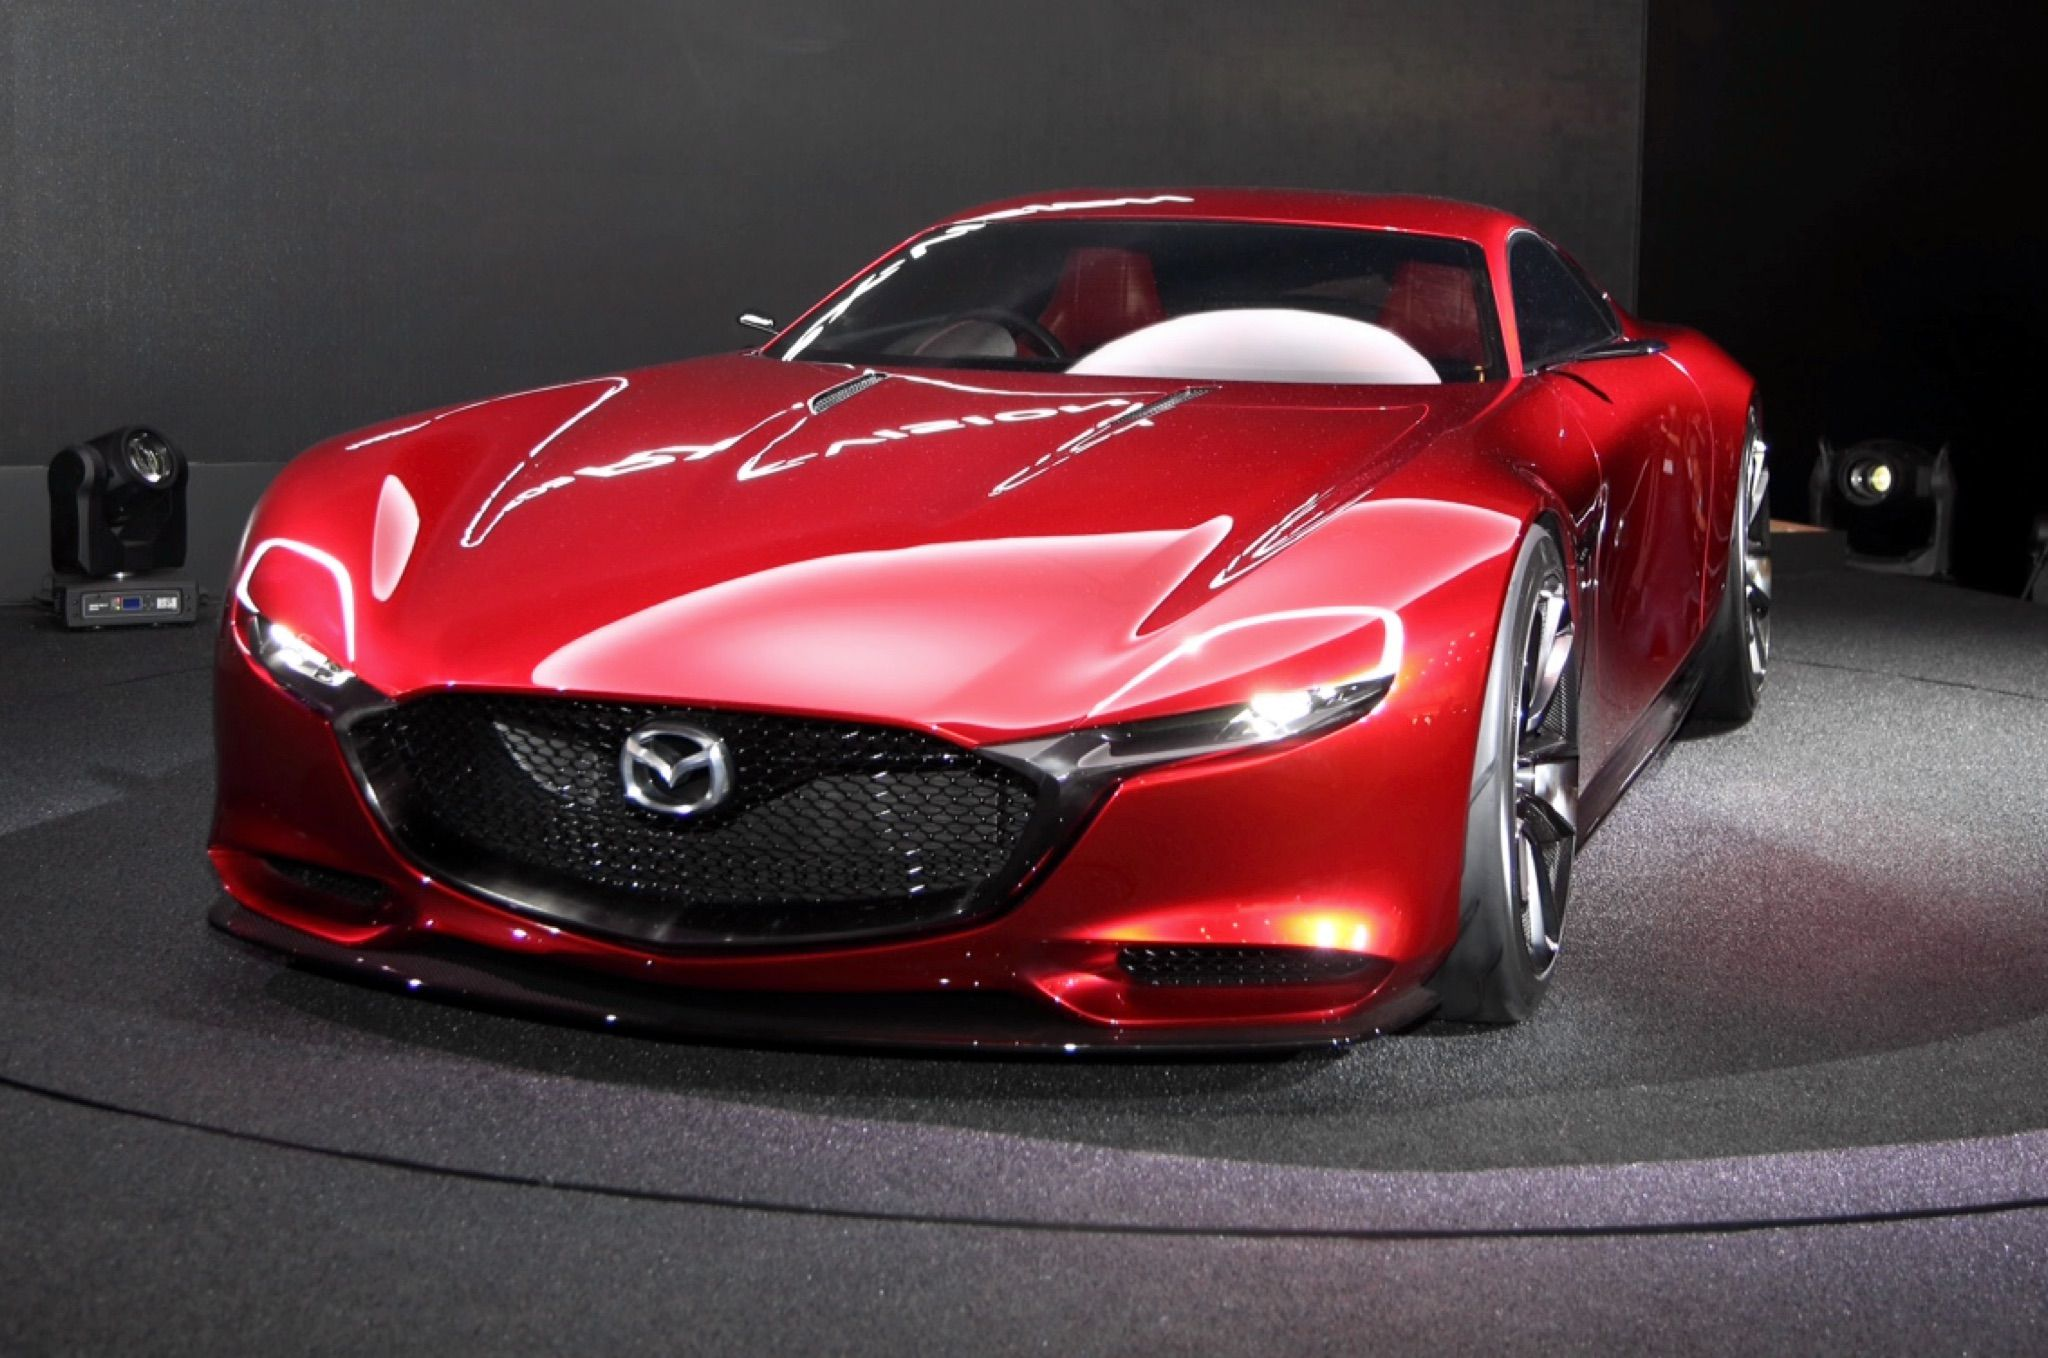 Merveilleux Itu0027s Unanimous Among Our Four Intrepid Correspondents Reporting From The  2015 Tokyo Motor Show: The Wankel Rotary Powered Mazda RX Vision Is The Hit  Of The ...